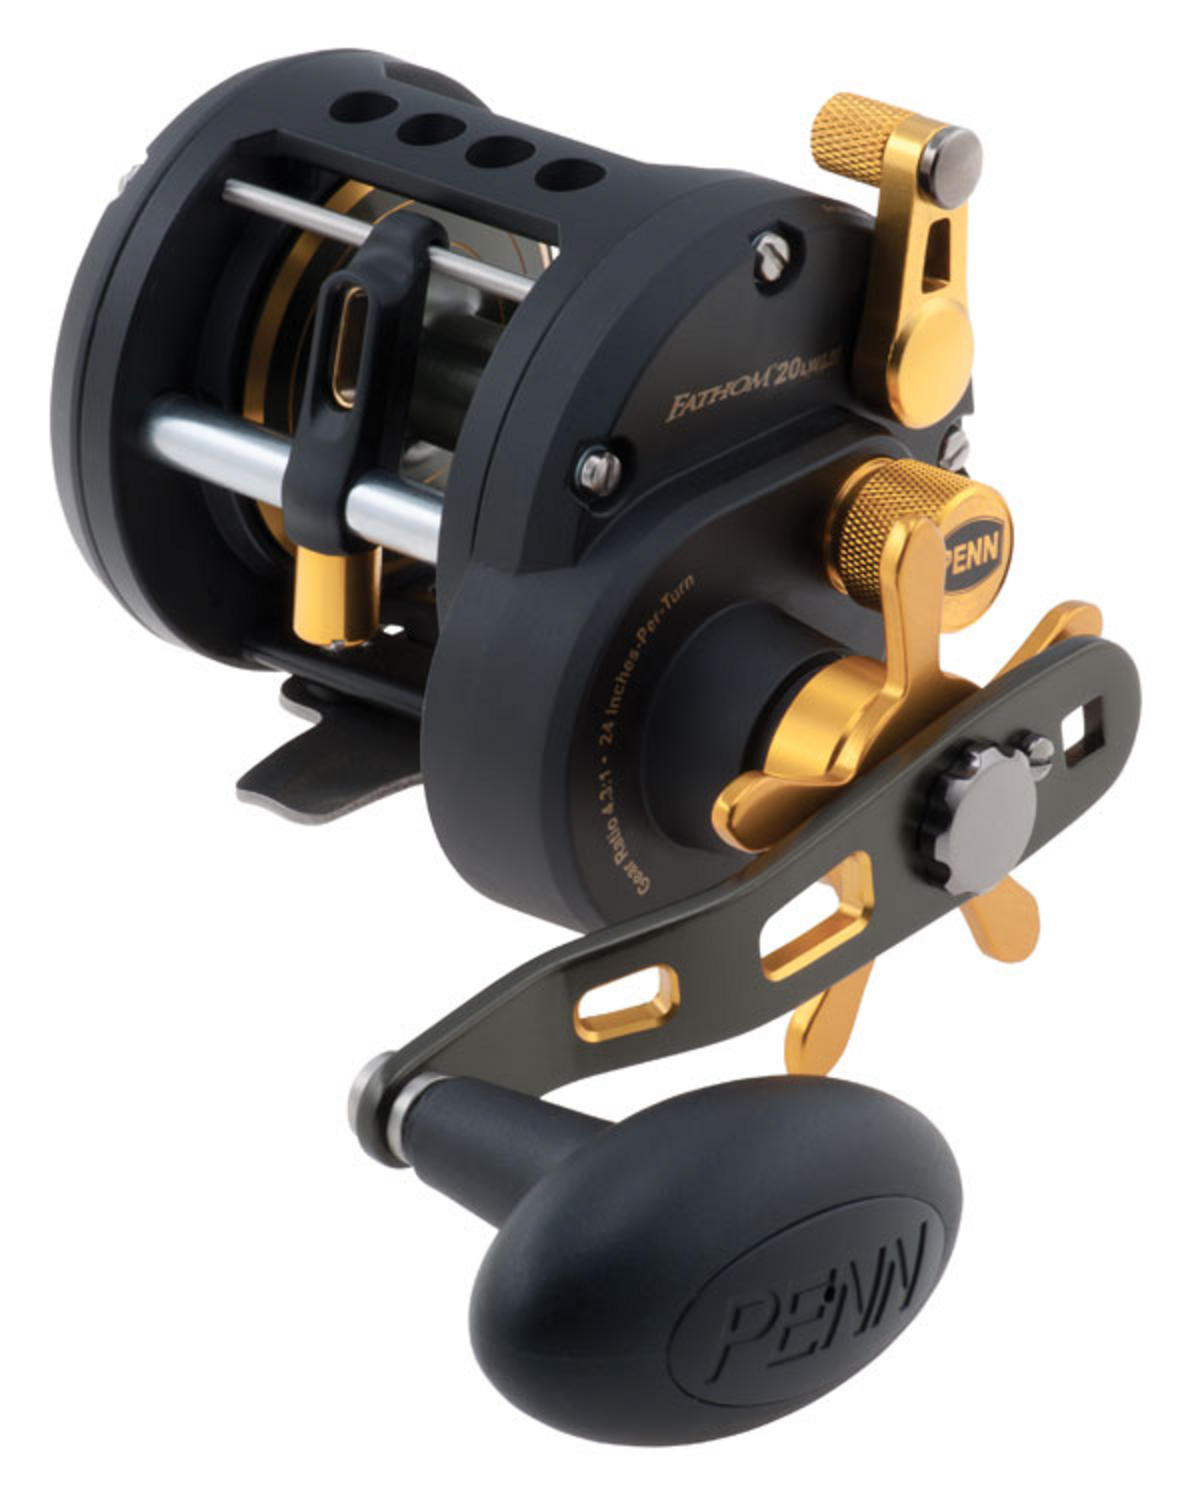 PENN FATHOM 25 LEVEL WIND LEFT HAND MULTIPLIER FISHING REEL FTH25LWLH 1259868